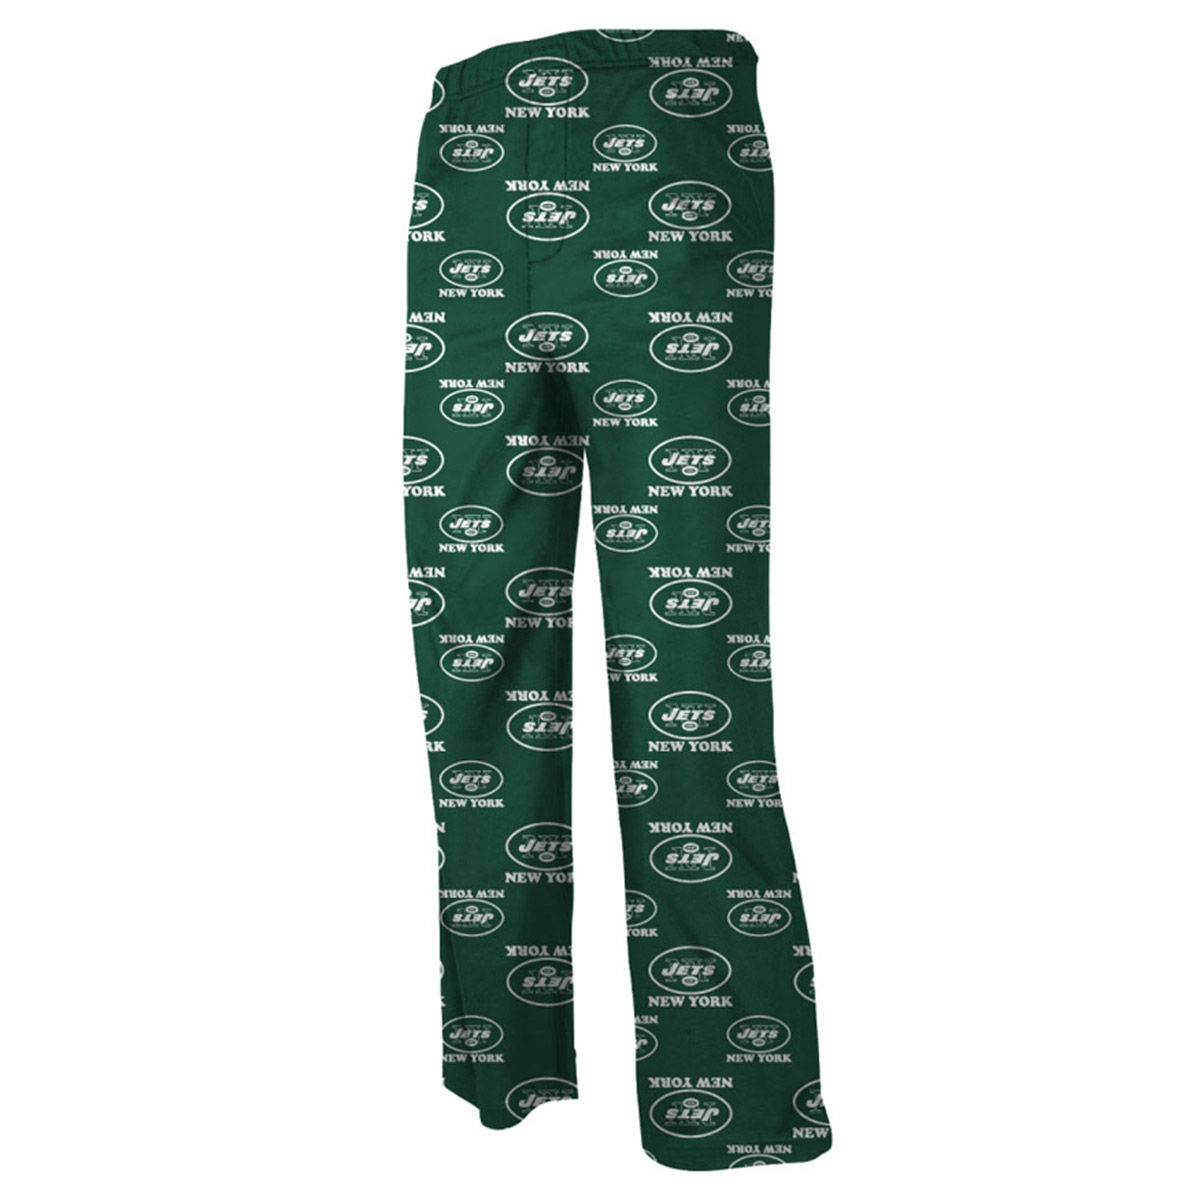 703bc633 New York Jets Apparel & Gear: Hats, Jerseys & More   Bob's Stores